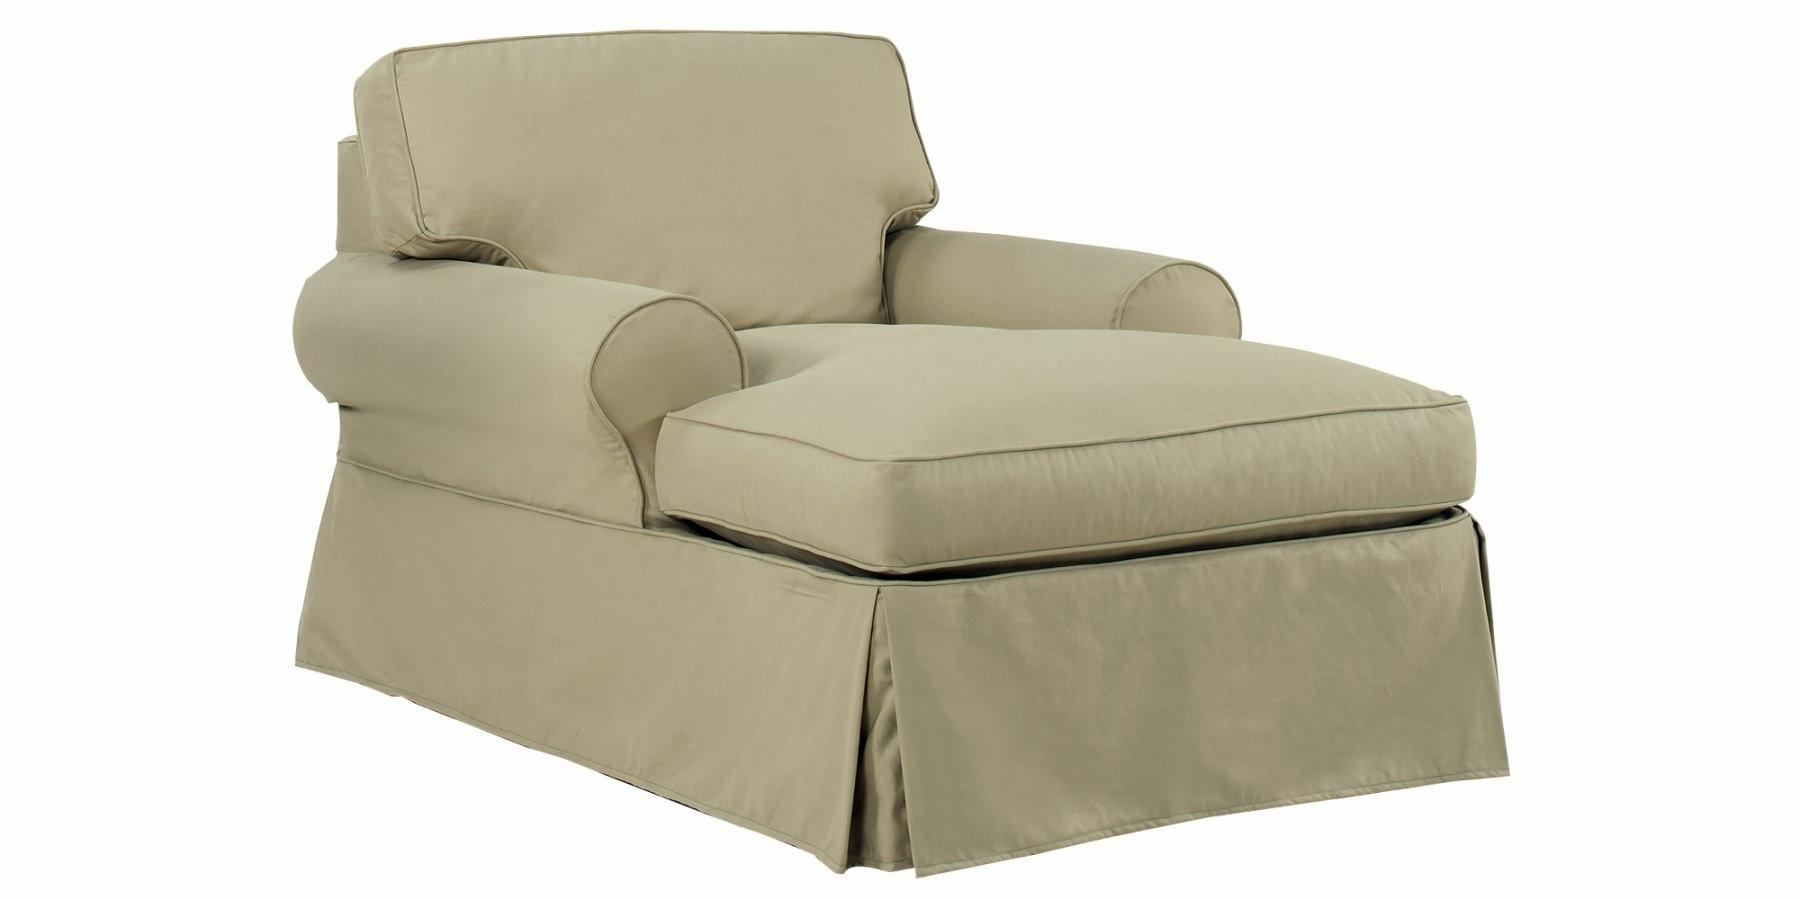 Slipcovered Chaise Lounge Chair | Club Furniture Within Slipcovered Chaises (Image 15 of 20)